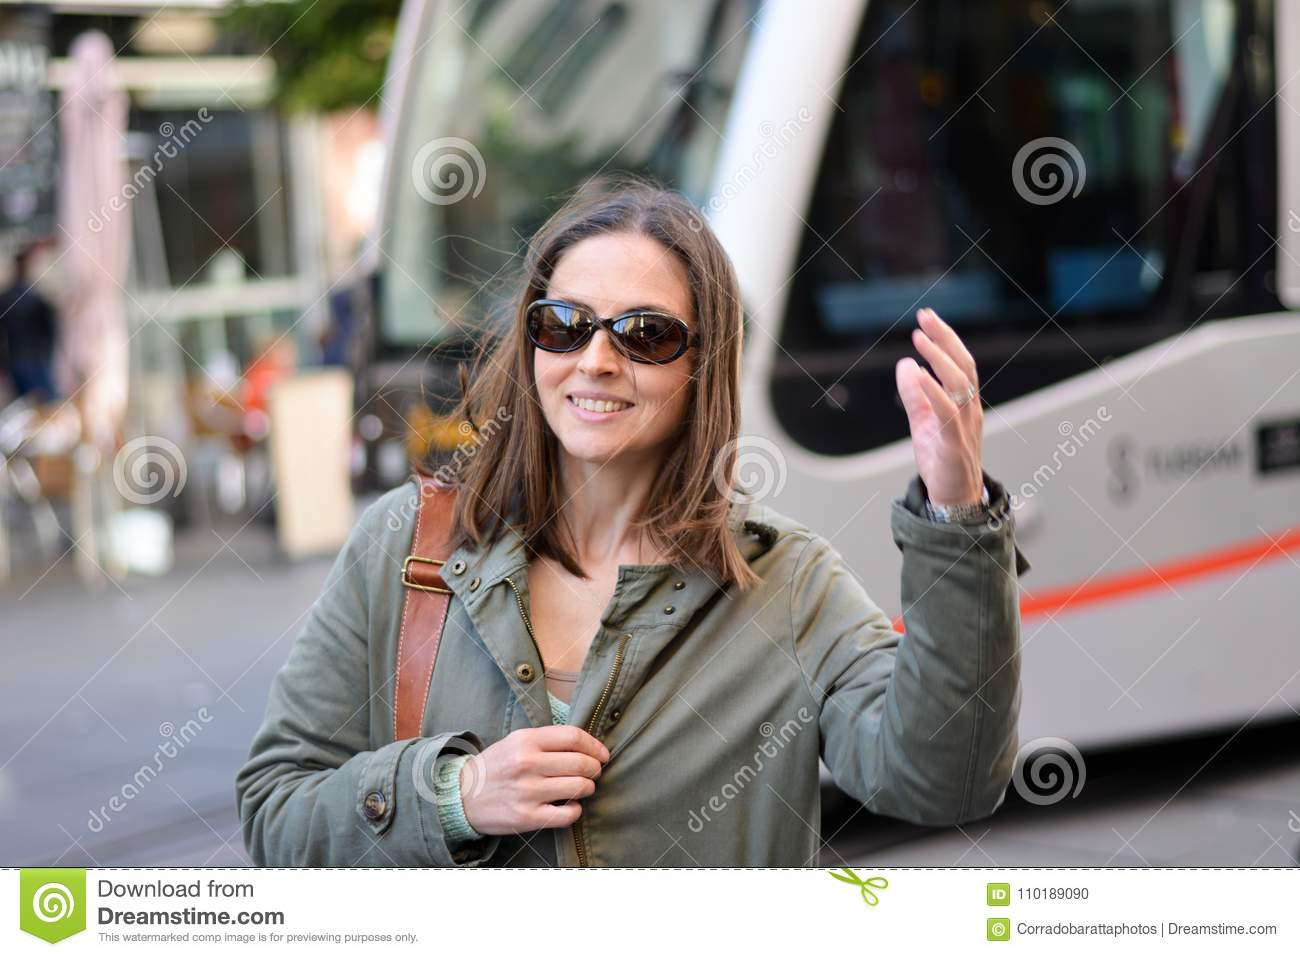 The newly arrived woman greets her hand after getting off the subway in Seville, Spain